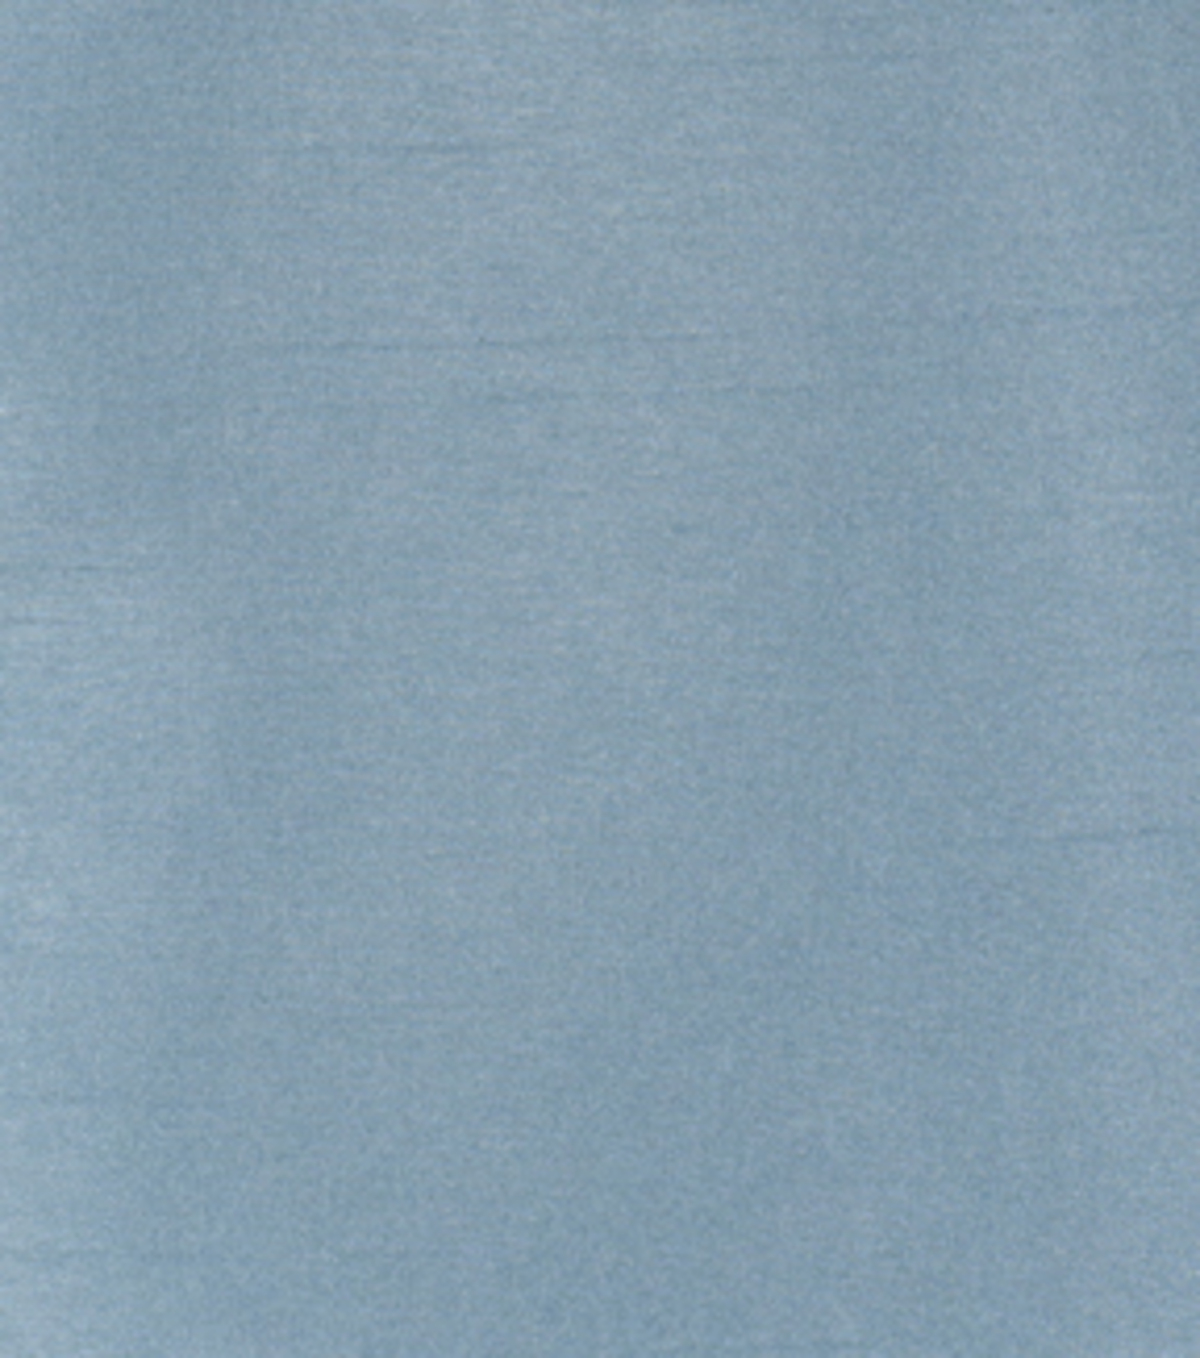 8\u0027\u0027x8\u0027\u0027 Home Decor Fabric Swatch-Solid Fabric Eaton Square Comros Mist